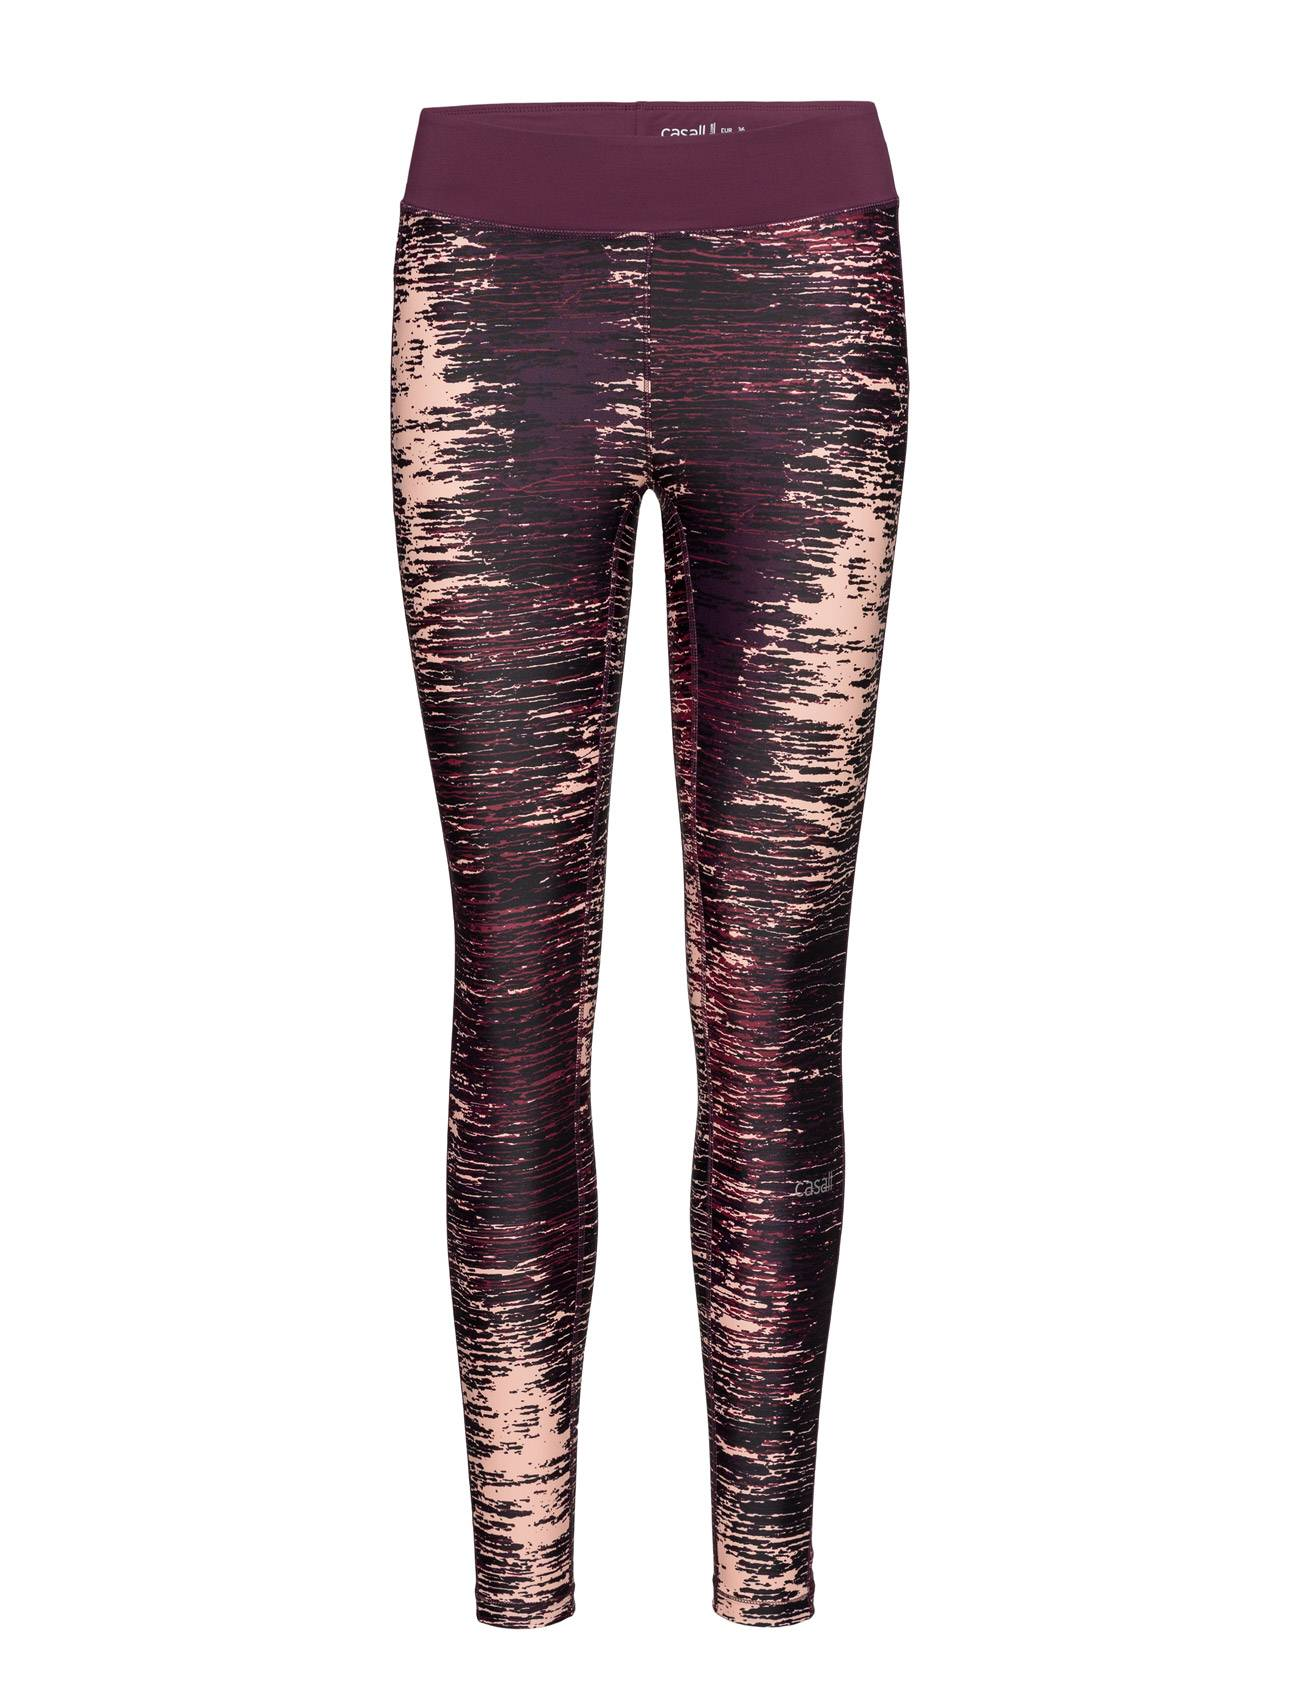 Casall Marble 7/8 Tights